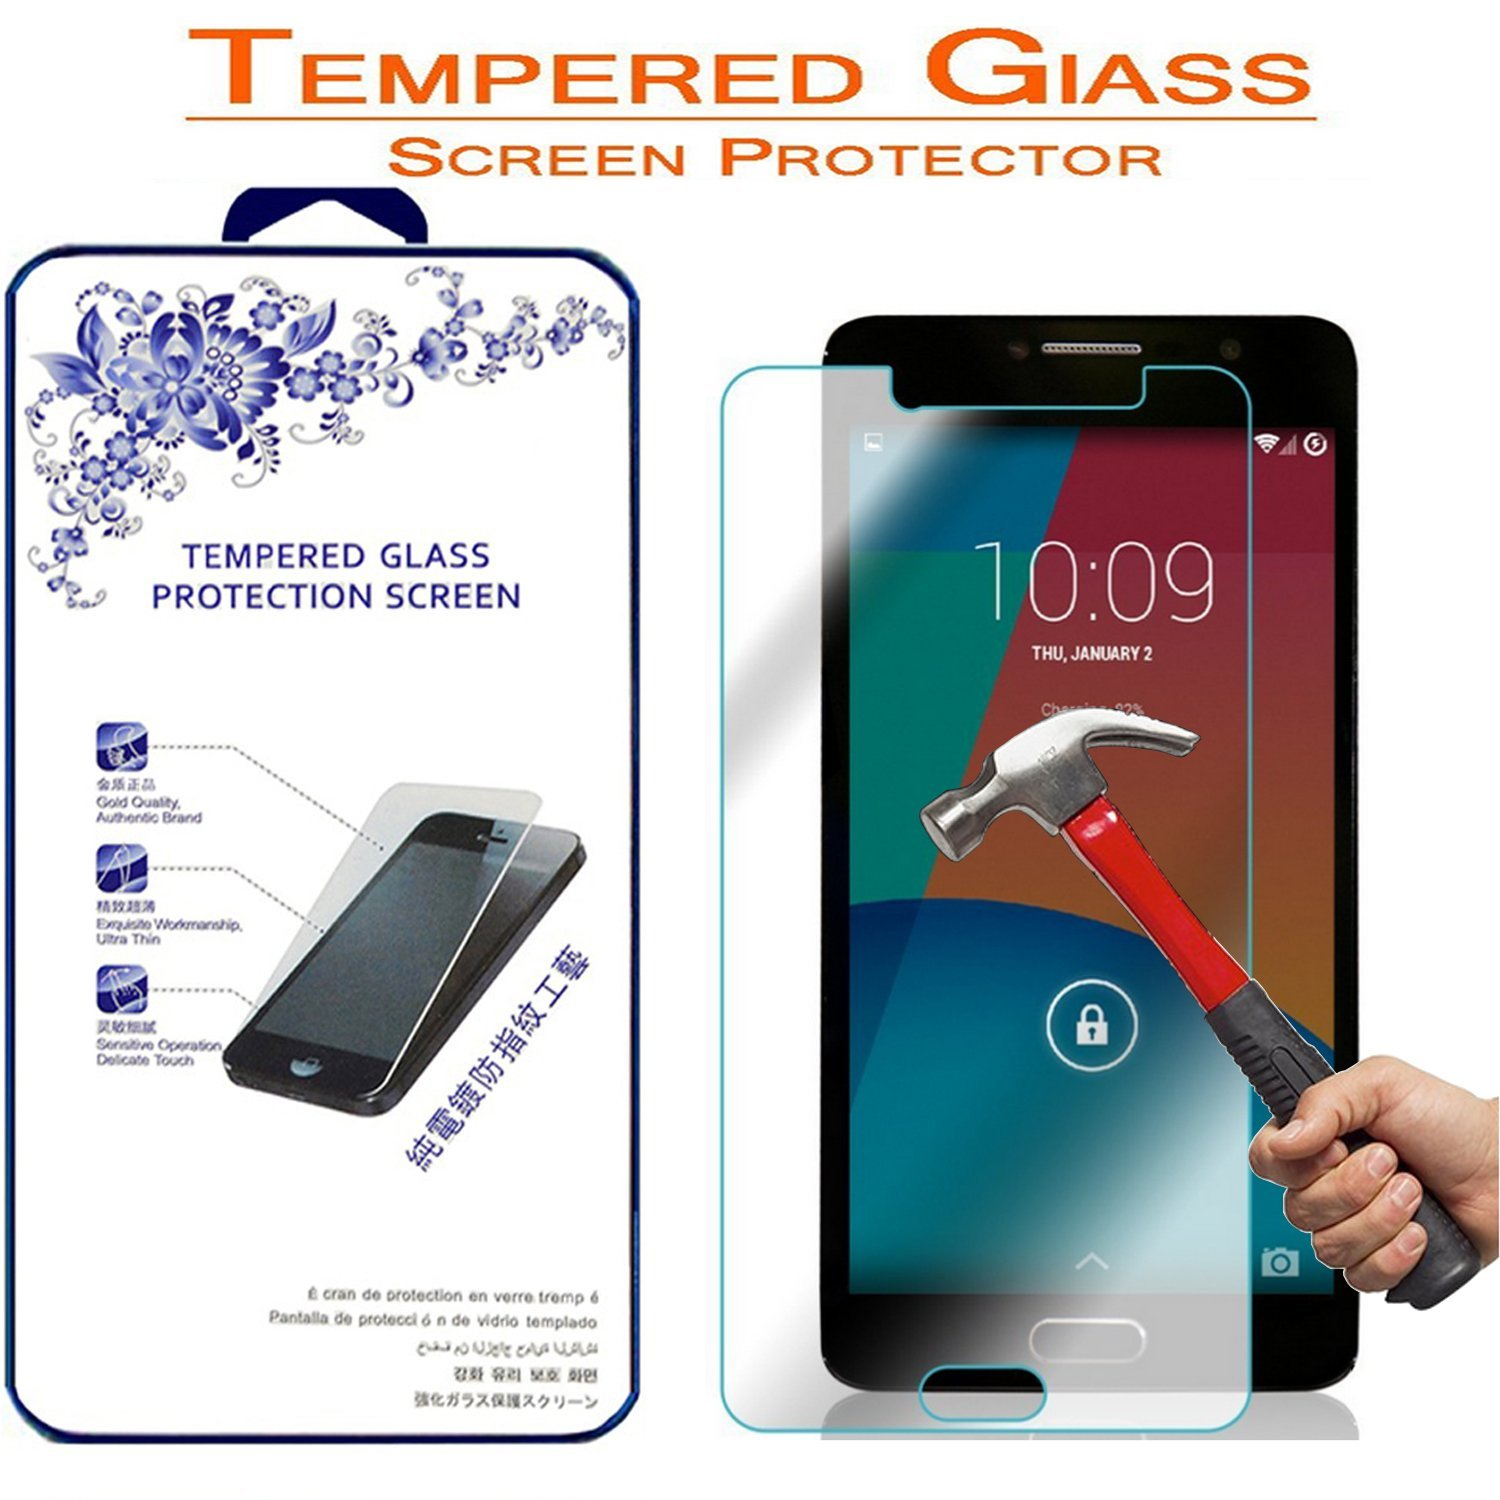 Alcatel One Touch Pop 4S Tempered Glass, Nacodex® Premium Tempered Glass Screen Protector For Alcatel One Touch Pop 4S 5.5-inch, 2.5D Round Edge 9H Hardness Bubble Free